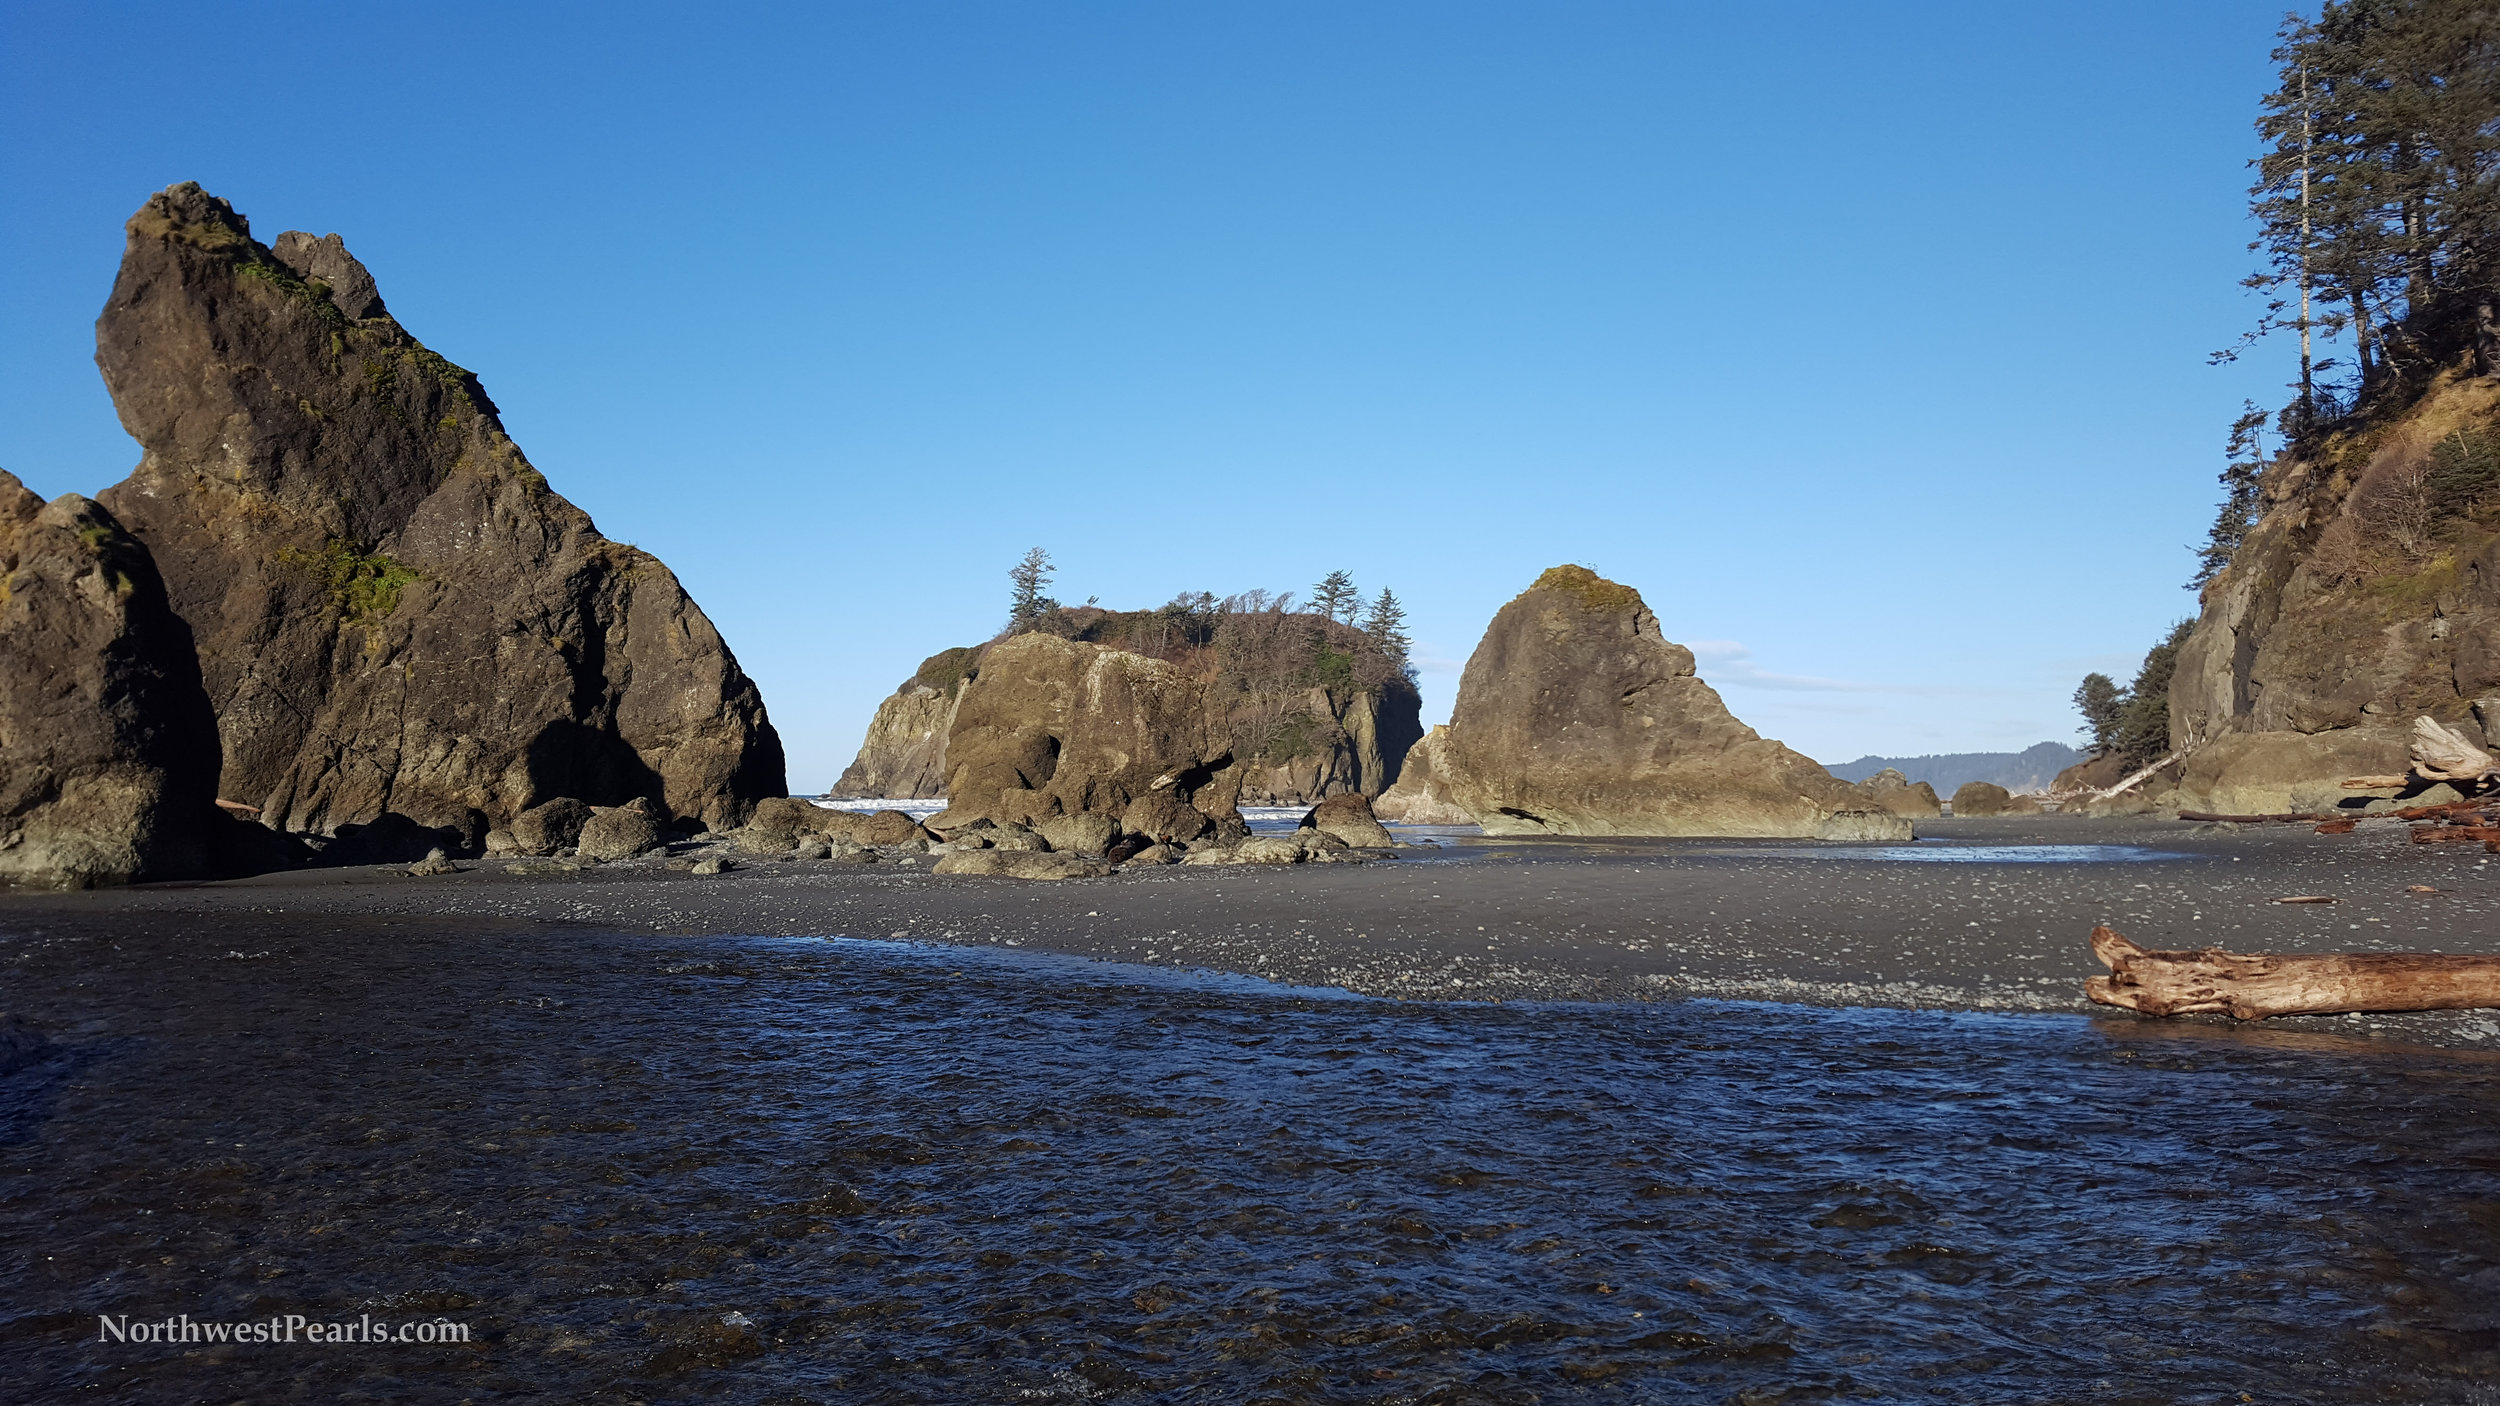 Northwest Pearls: Ruby Beach